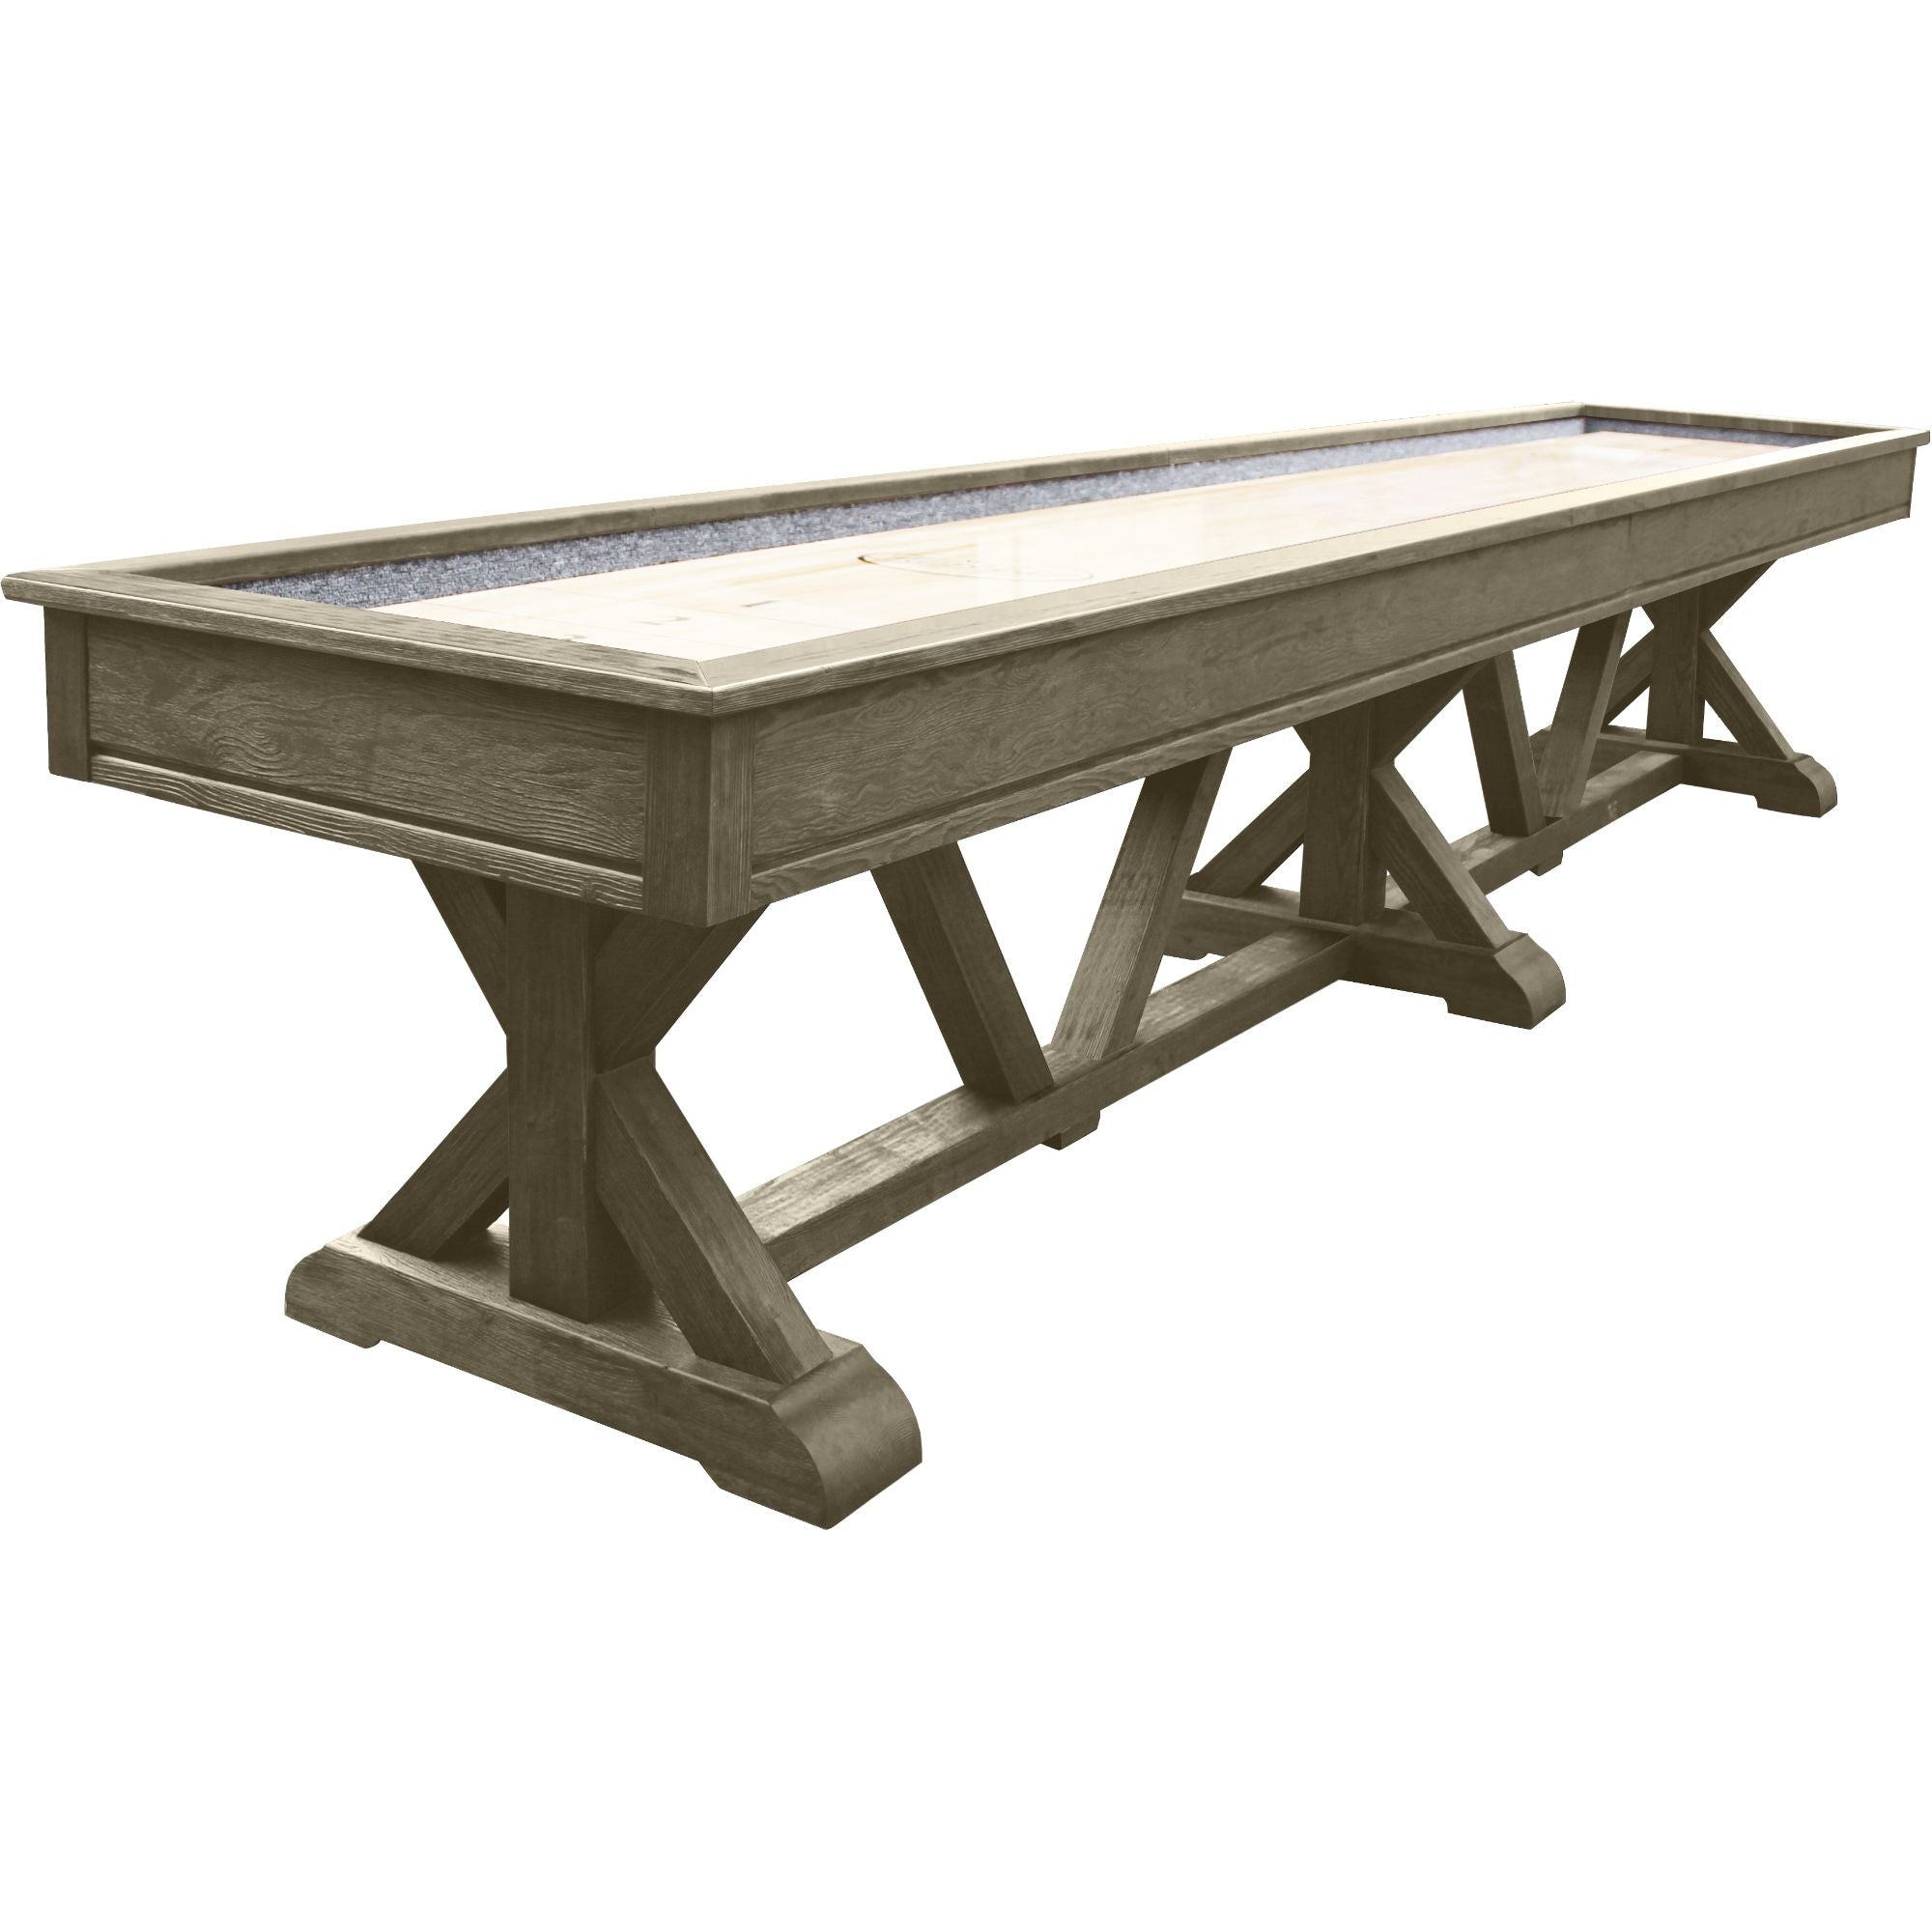 Playcraft Brazos River Pro-Series Shuffleboard Table - Gaming Blaze